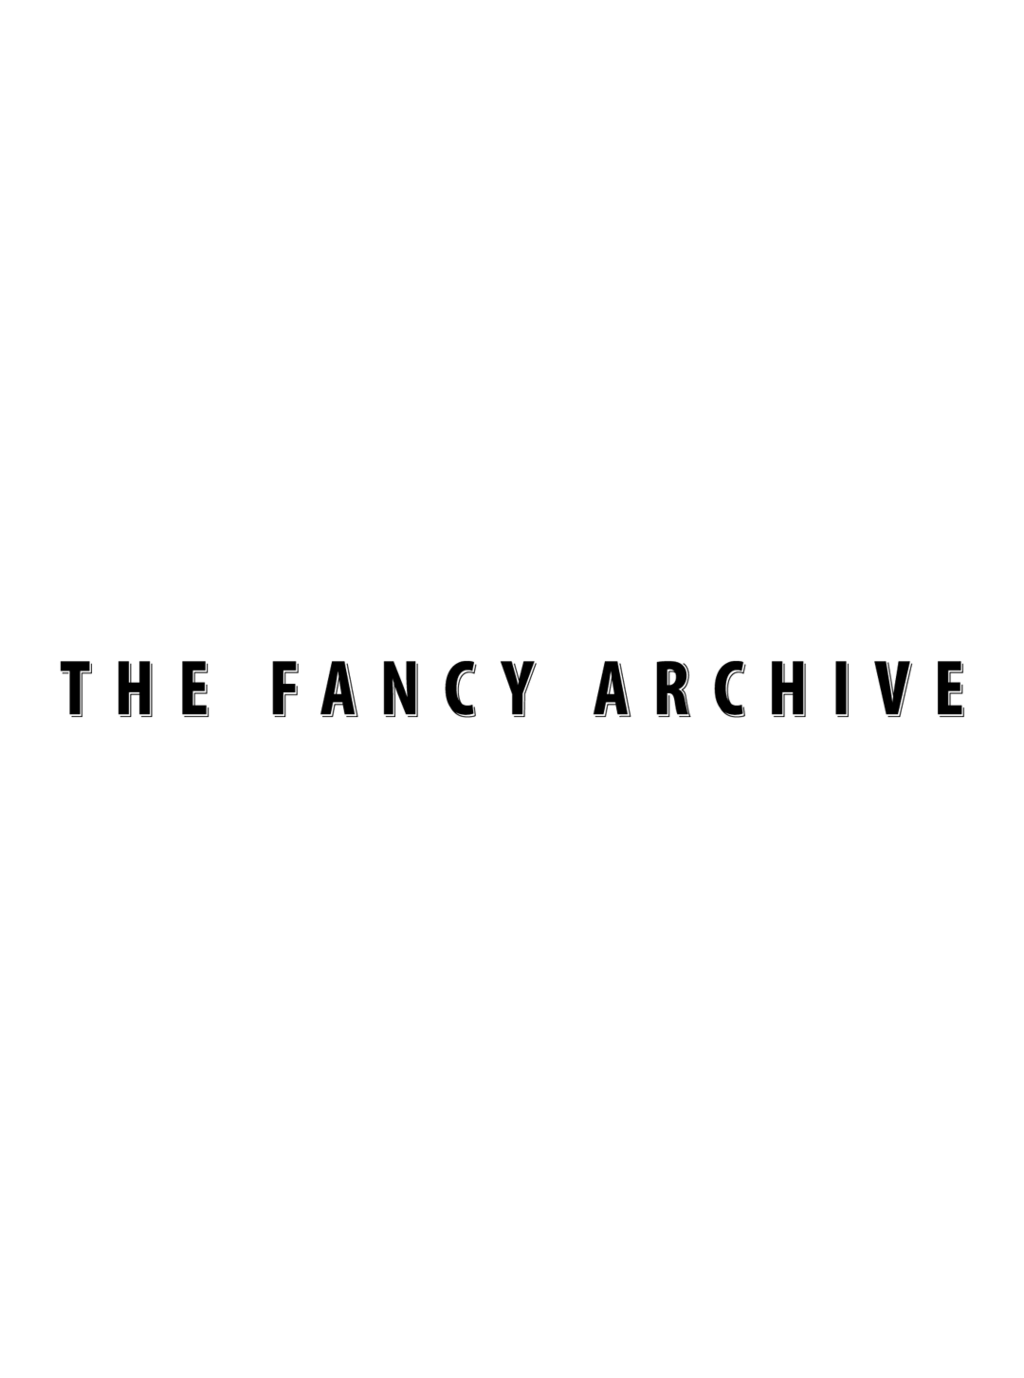 TFA - The Fancy Archive